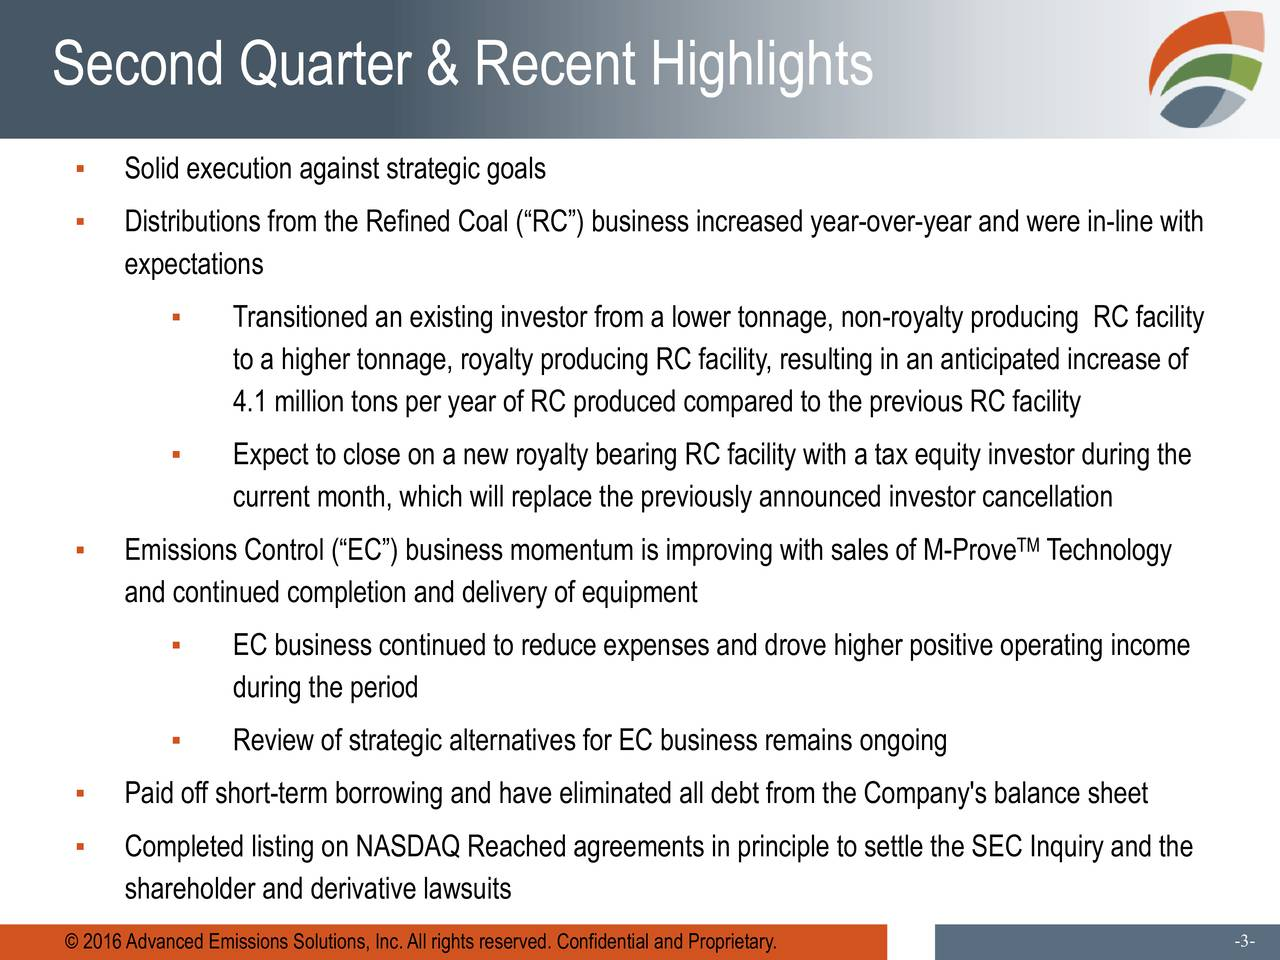 Solid execution against strategic goals Distributions from the Refined Coal (RC) business increased year-over-year and were in-line with expectations Transitioned an existing investor from a lower tonnage, non-royalty producing RC facility to a higher tonnage, royalty producing RC facility, resulting in an anticipated increase of 4.1 million tons per year of RC produced compared to the previous RC facility Expect to close on a new royalty bearing RC facility with a tax equity investor during the current month, which will replace the previously announced investor cancellation Emissions Control (EC) business momentum is improving with sales of M-Prove Technology and continued completion and delivery of equipment EC business continued to reduce expenses and drove higher positive operating income during the period Review of strategic alternatives for EC business remains ongoing Paid off short-term borrowing and have eliminated all debt from the Company's balance sheet Completed listing on NASDAQ Reached agreements in principle to settle the SEC Inquiry and the shareholder and derivative lawsuits